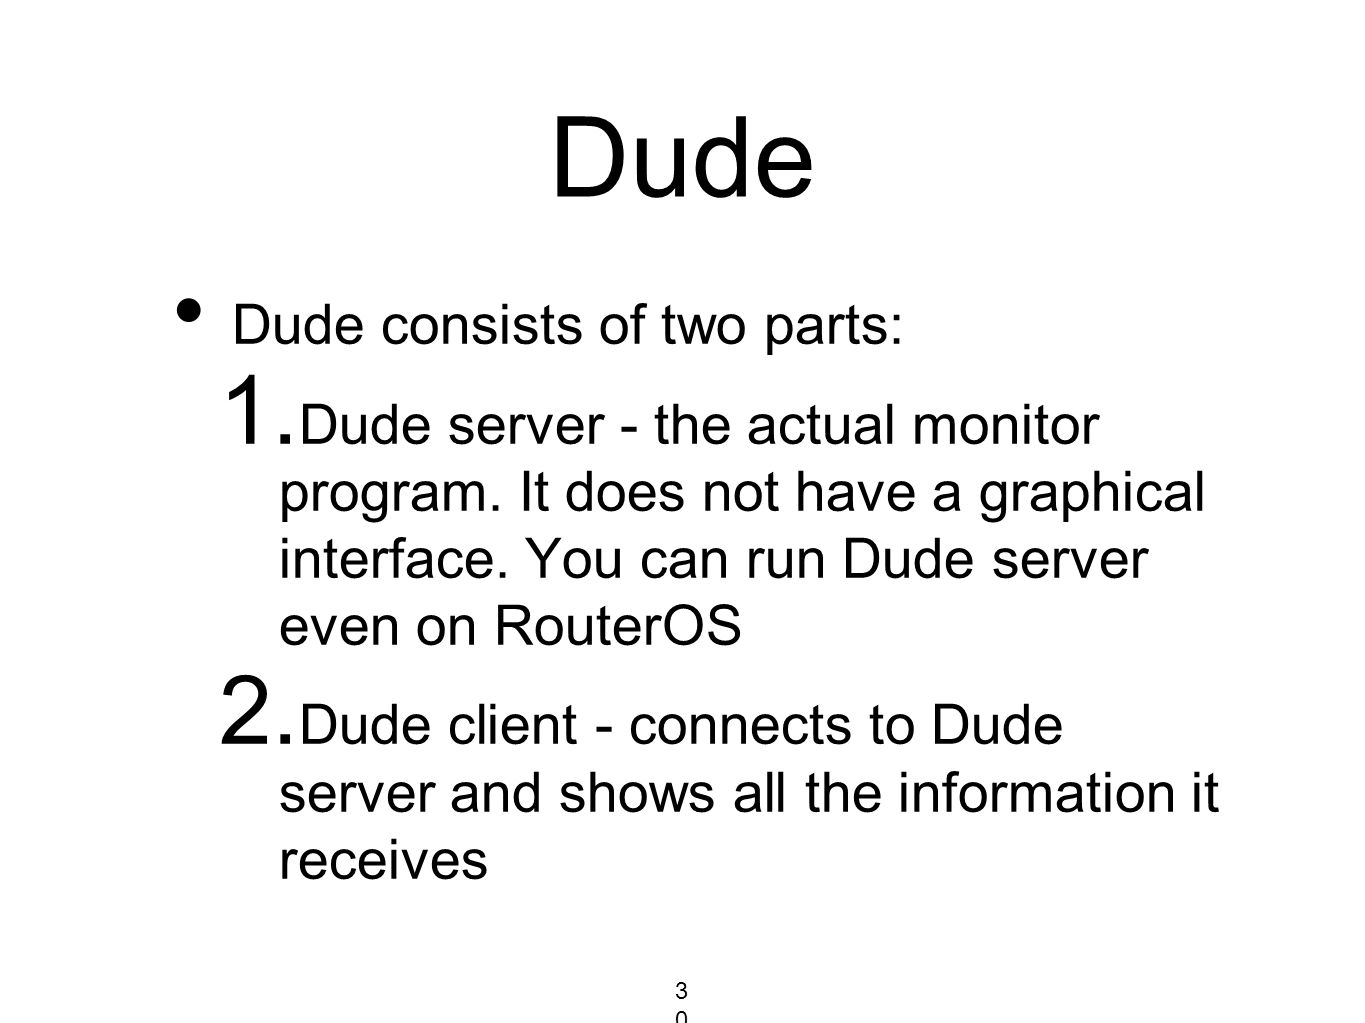 Dude Dude consists of two parts: 1. Dude server - the actual monitor program. It does not have a graphical interface. You can run Dude server even on